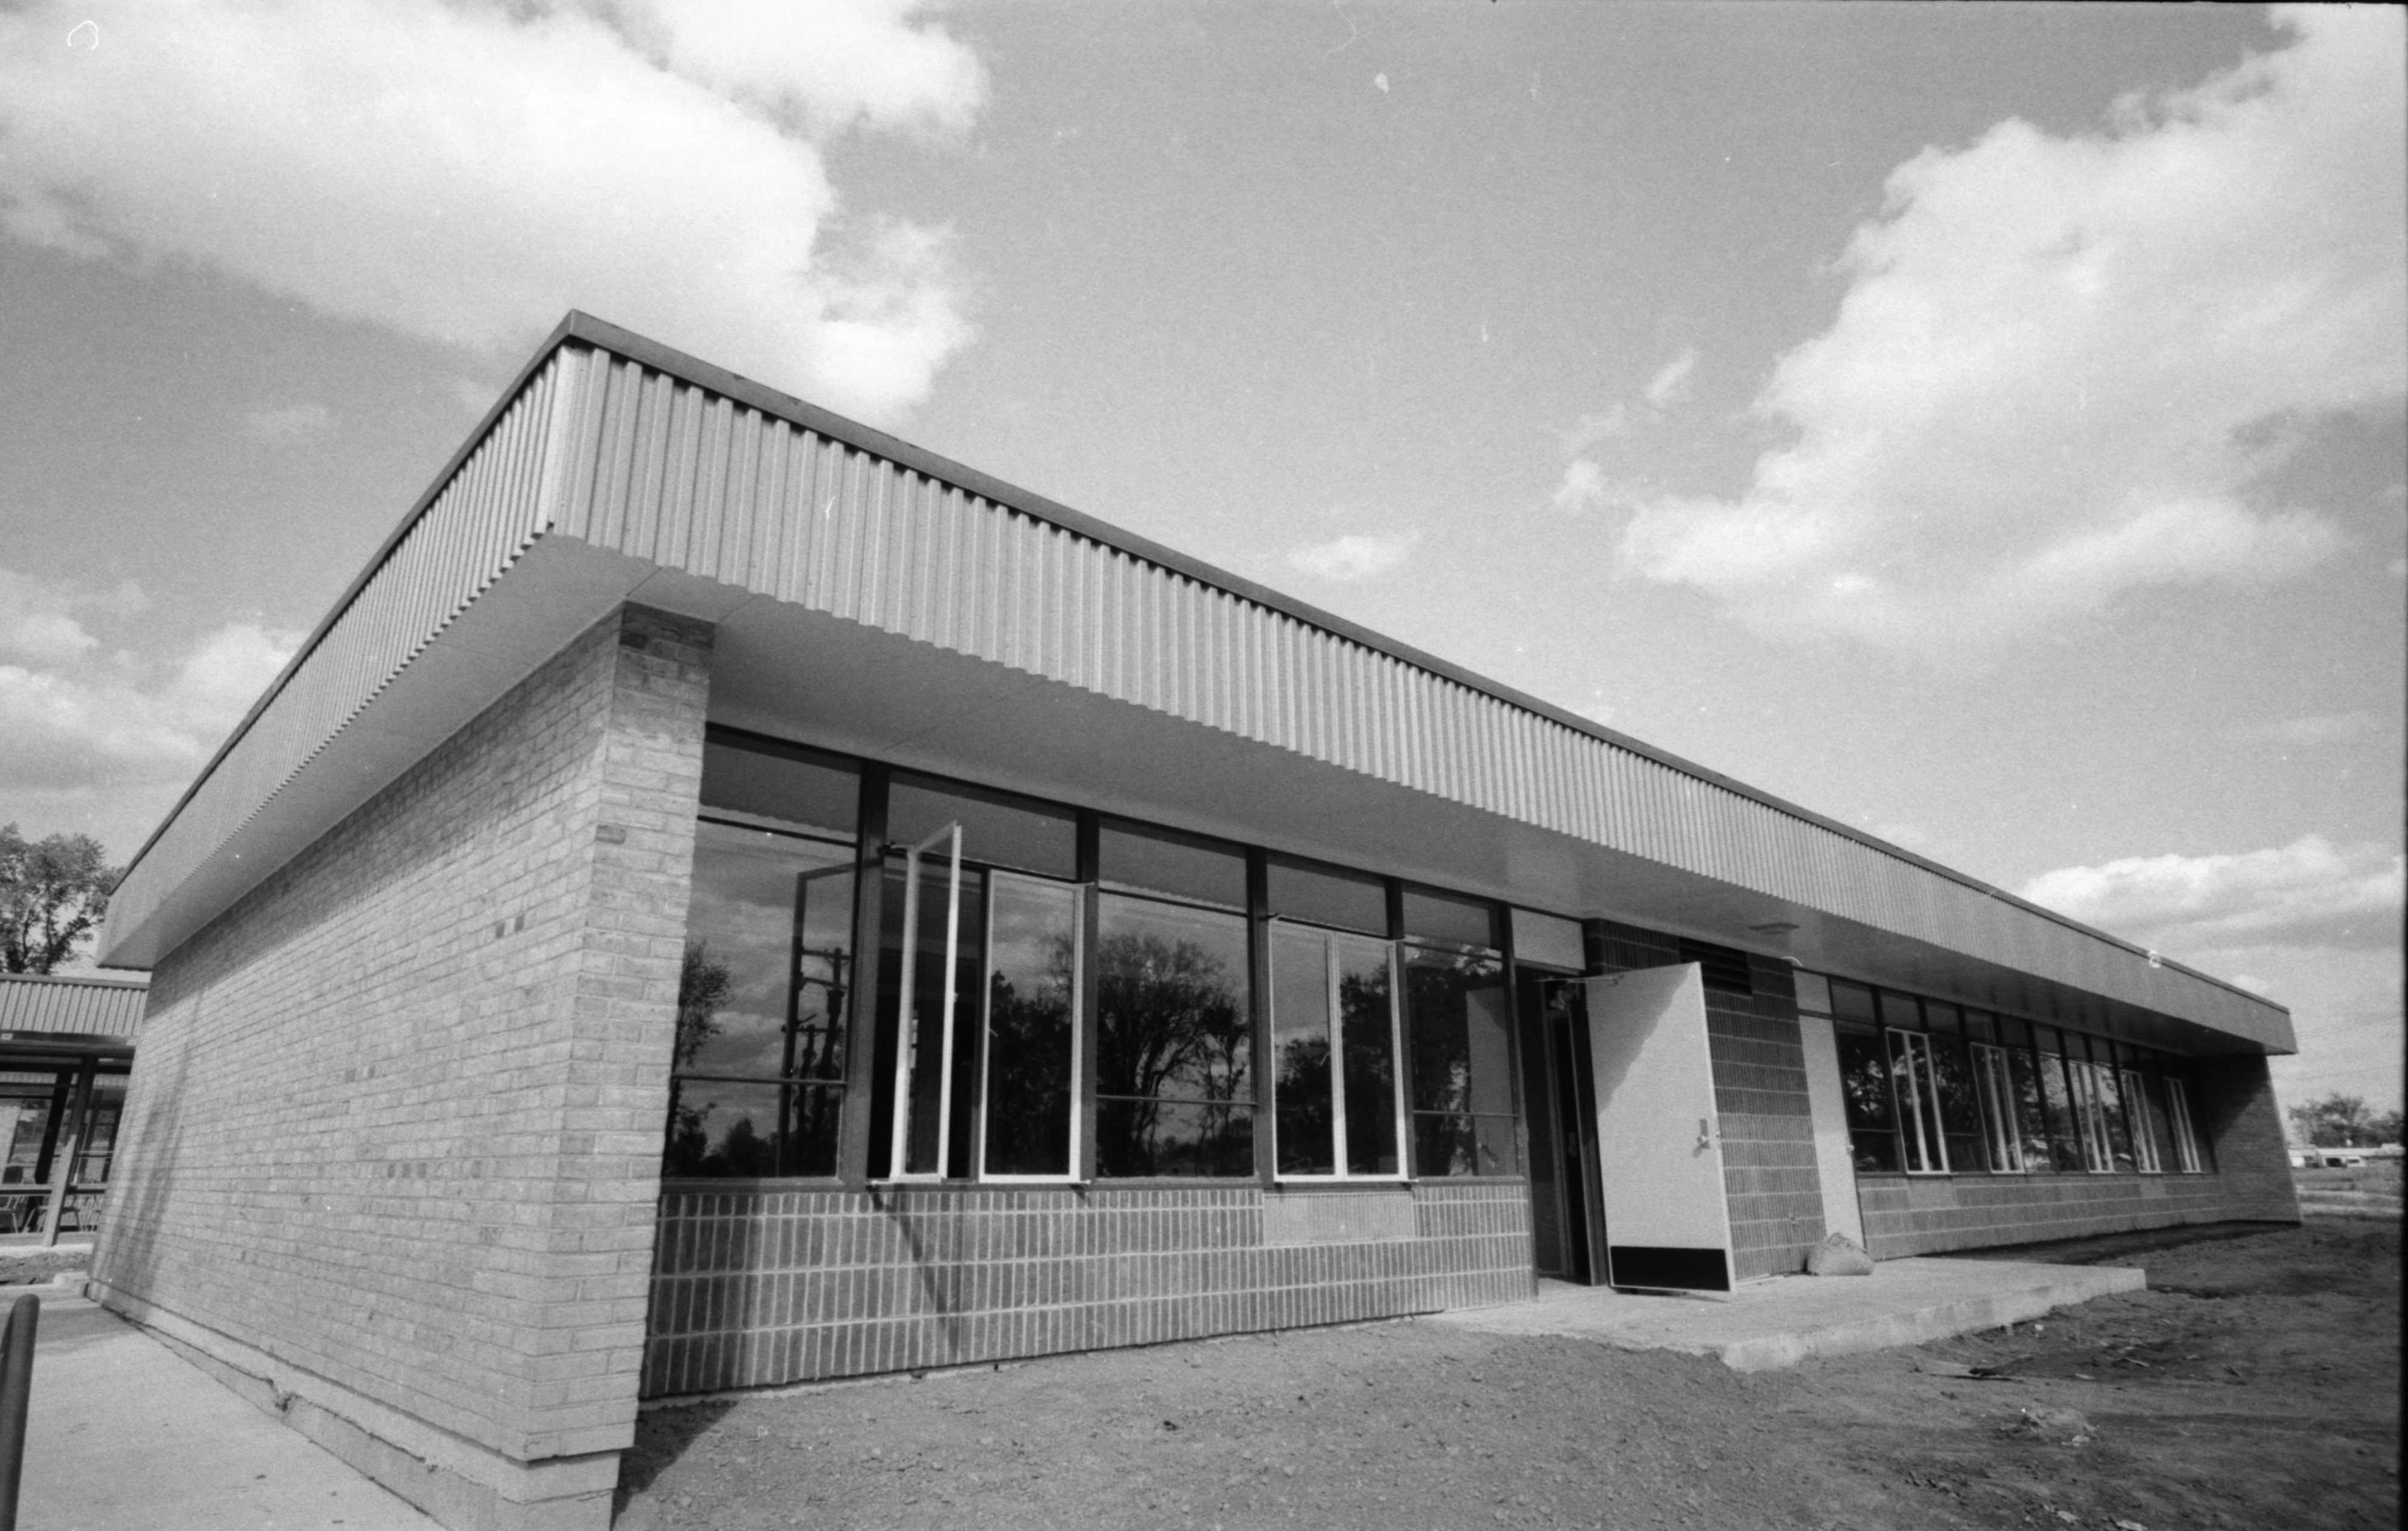 Newly completed Abbot Elementary School, September 1962 image